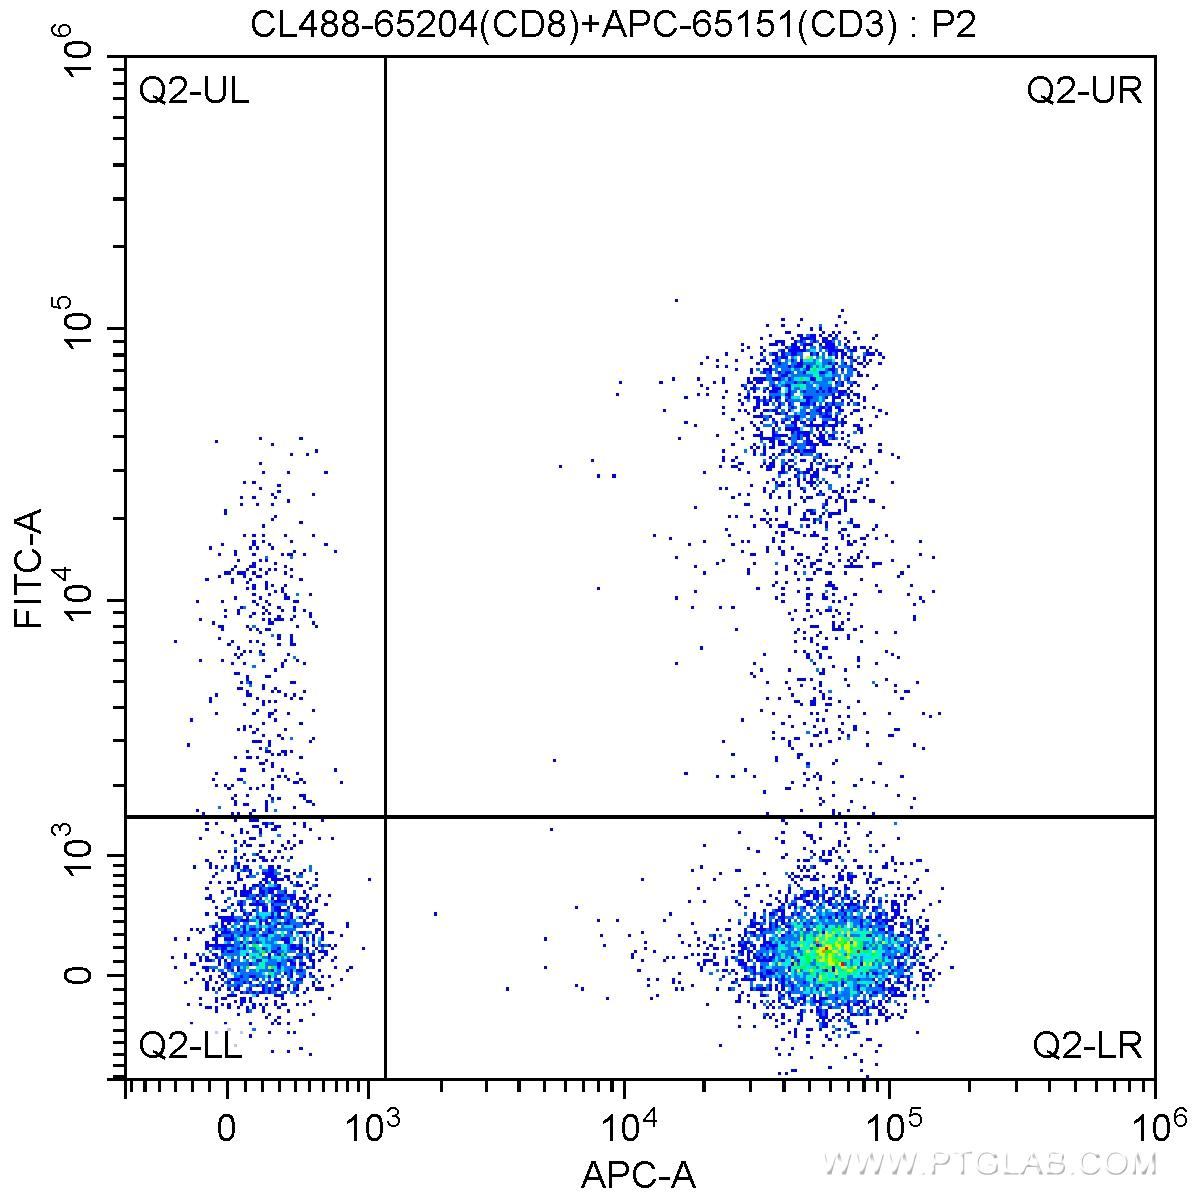 1X10^6 human peripheral blood lymphocytes were surface stained with APC-Anti-Human CD3 (APC-65151, Clone: UCHT1) and 5 ul CoraLite®488-conjugated Anti-Human CD8 (CL488-65204, Clone: UCHT4). Cells were not fixed.